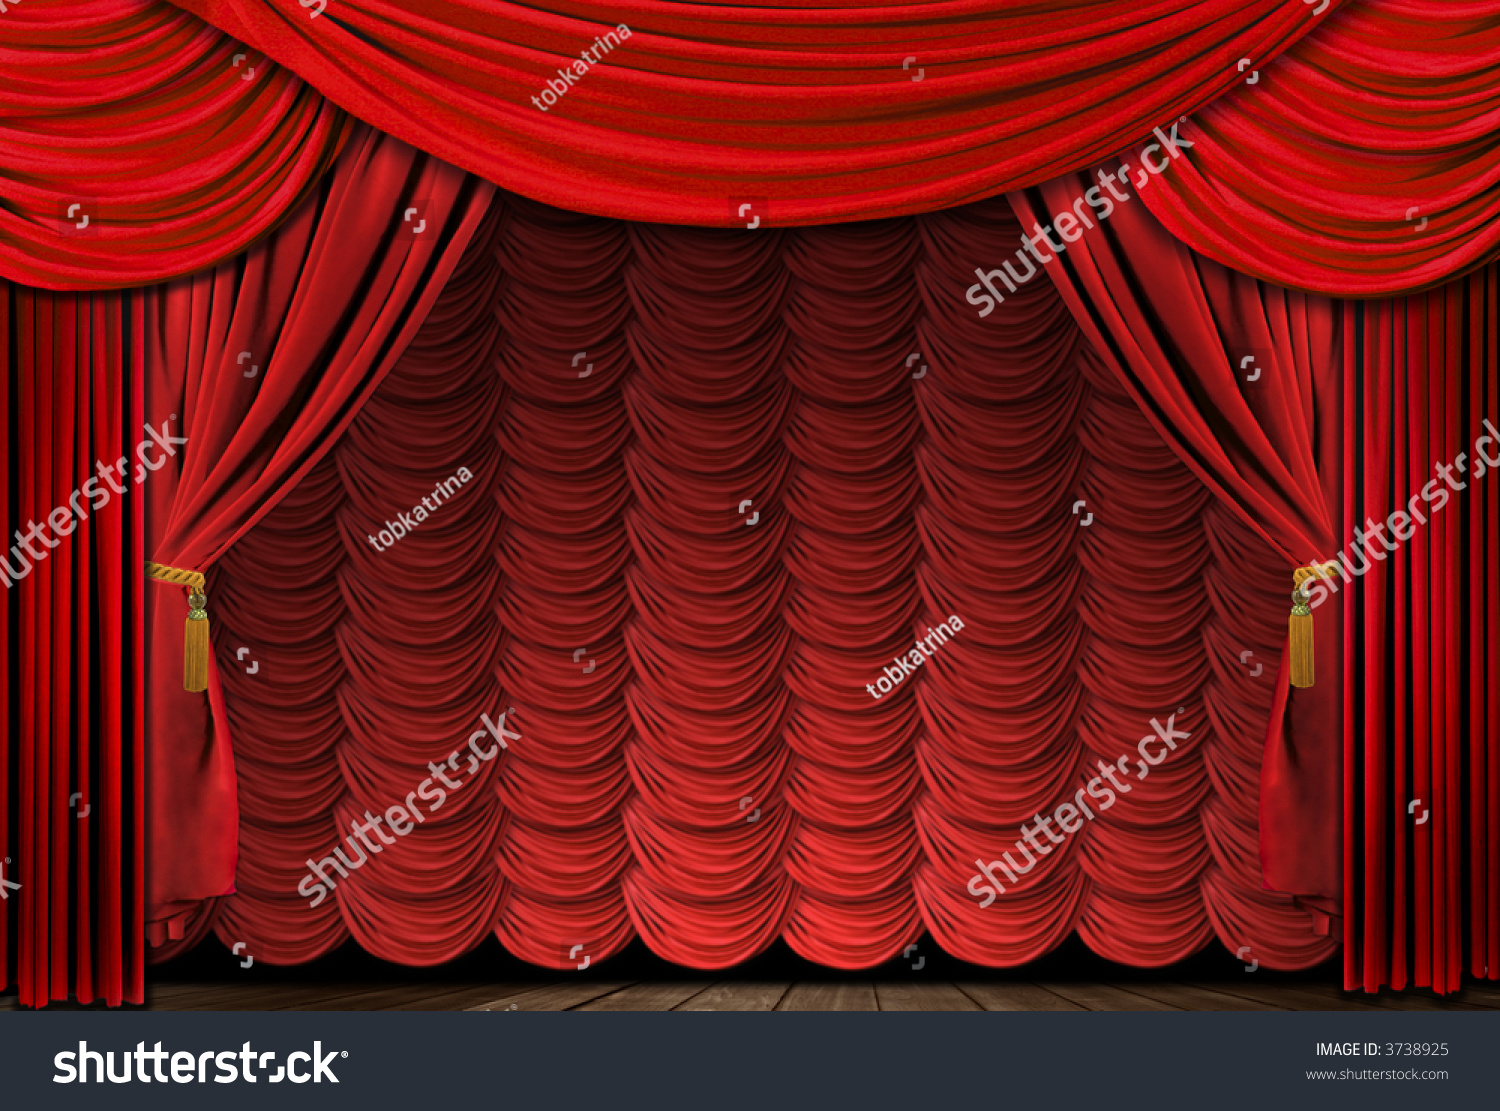 Stock photo dramatic red old fashioned elegant theater stage stock - Old Fashioned Elegant Theater Stage With Velvet Curtains Preview Save To A Lightbox Find Similar Images Share